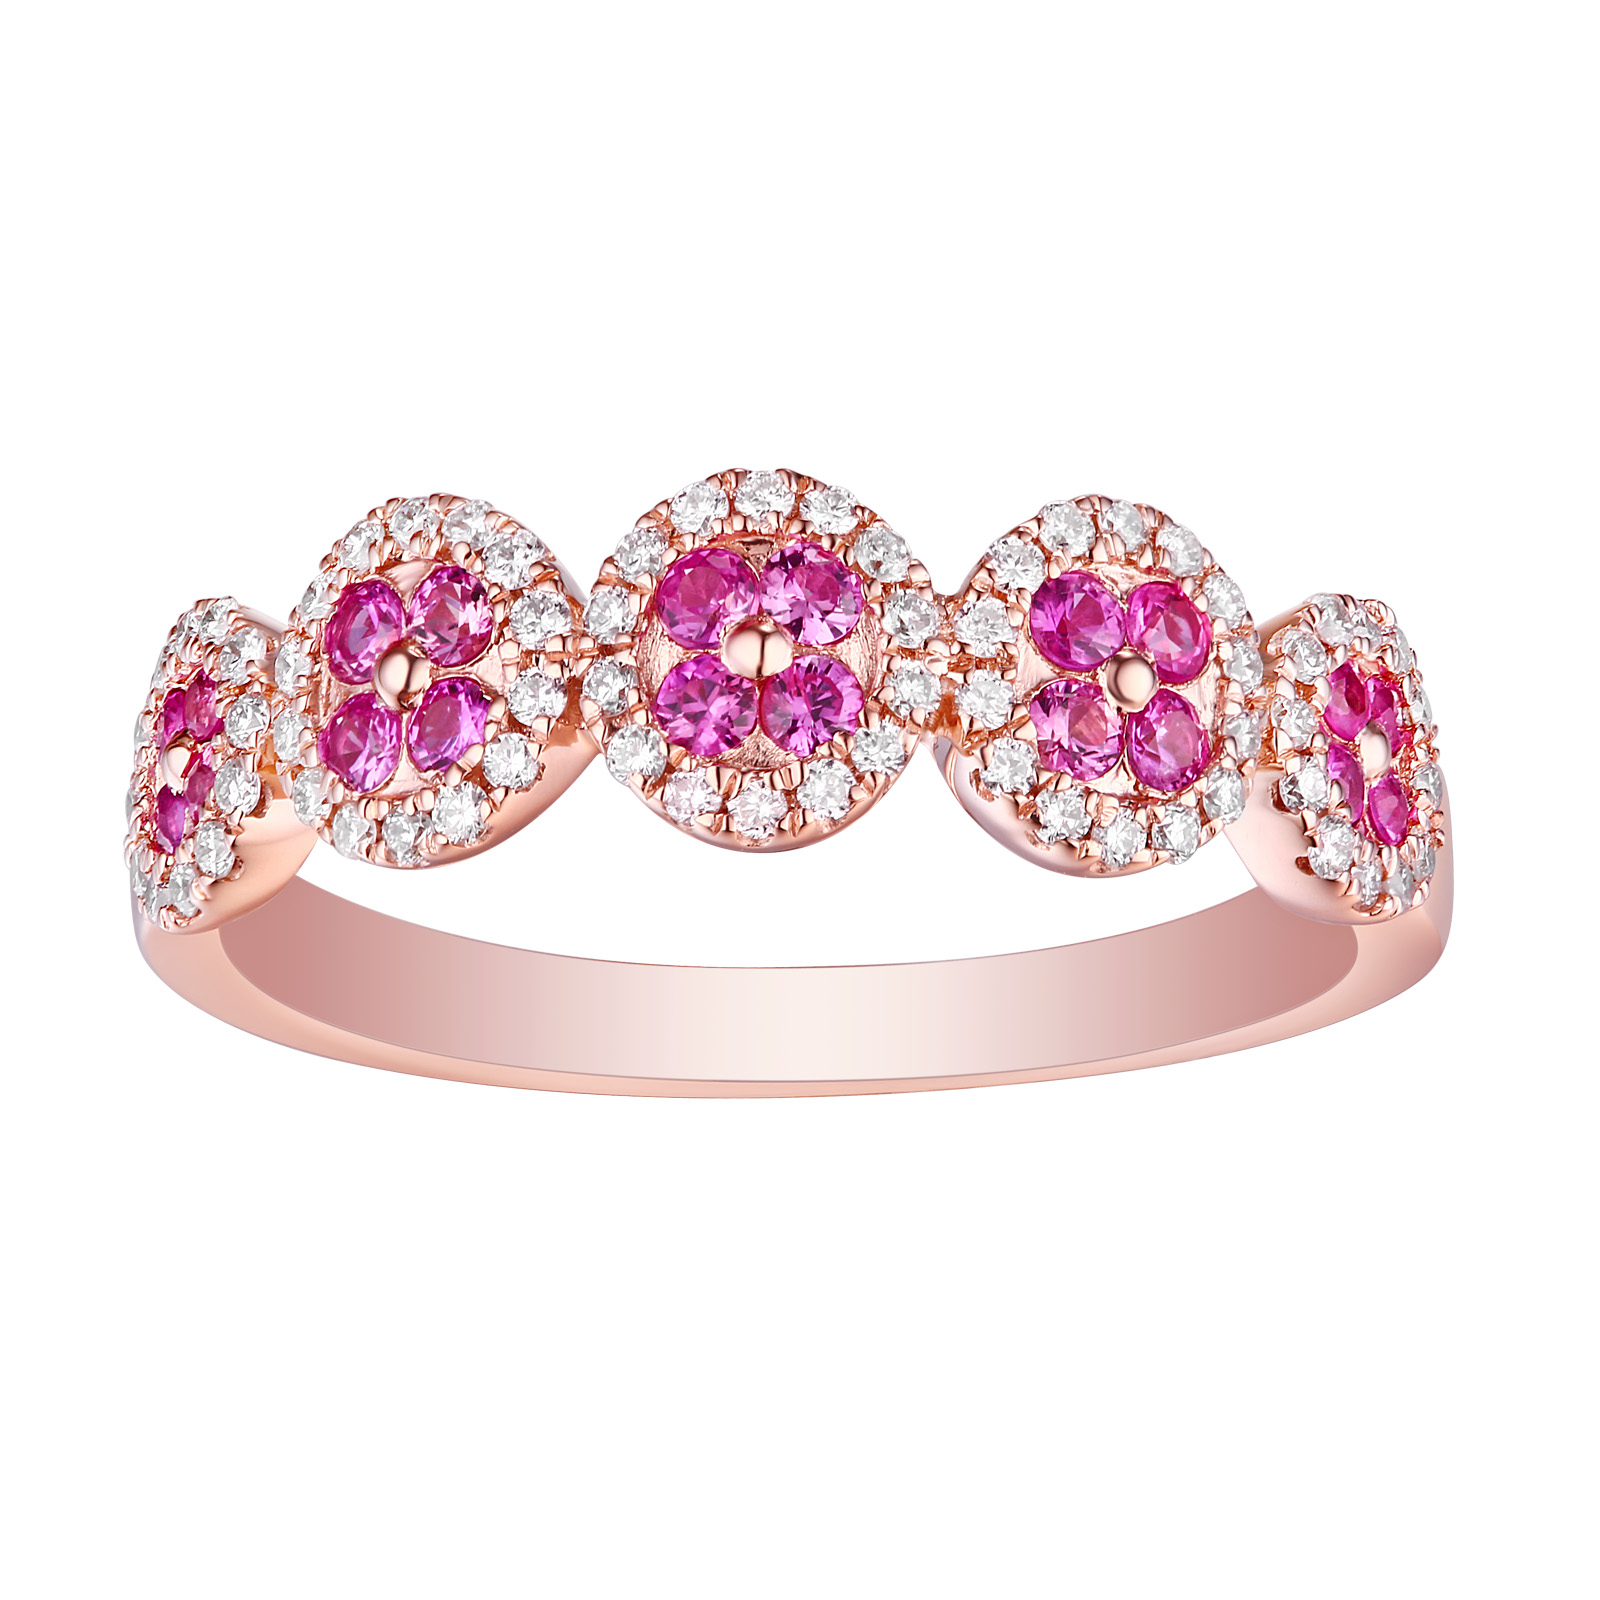 R13401PSA – 14K Rose Gold Pink Sapphire and Diamond Ring, 0.54 TCW